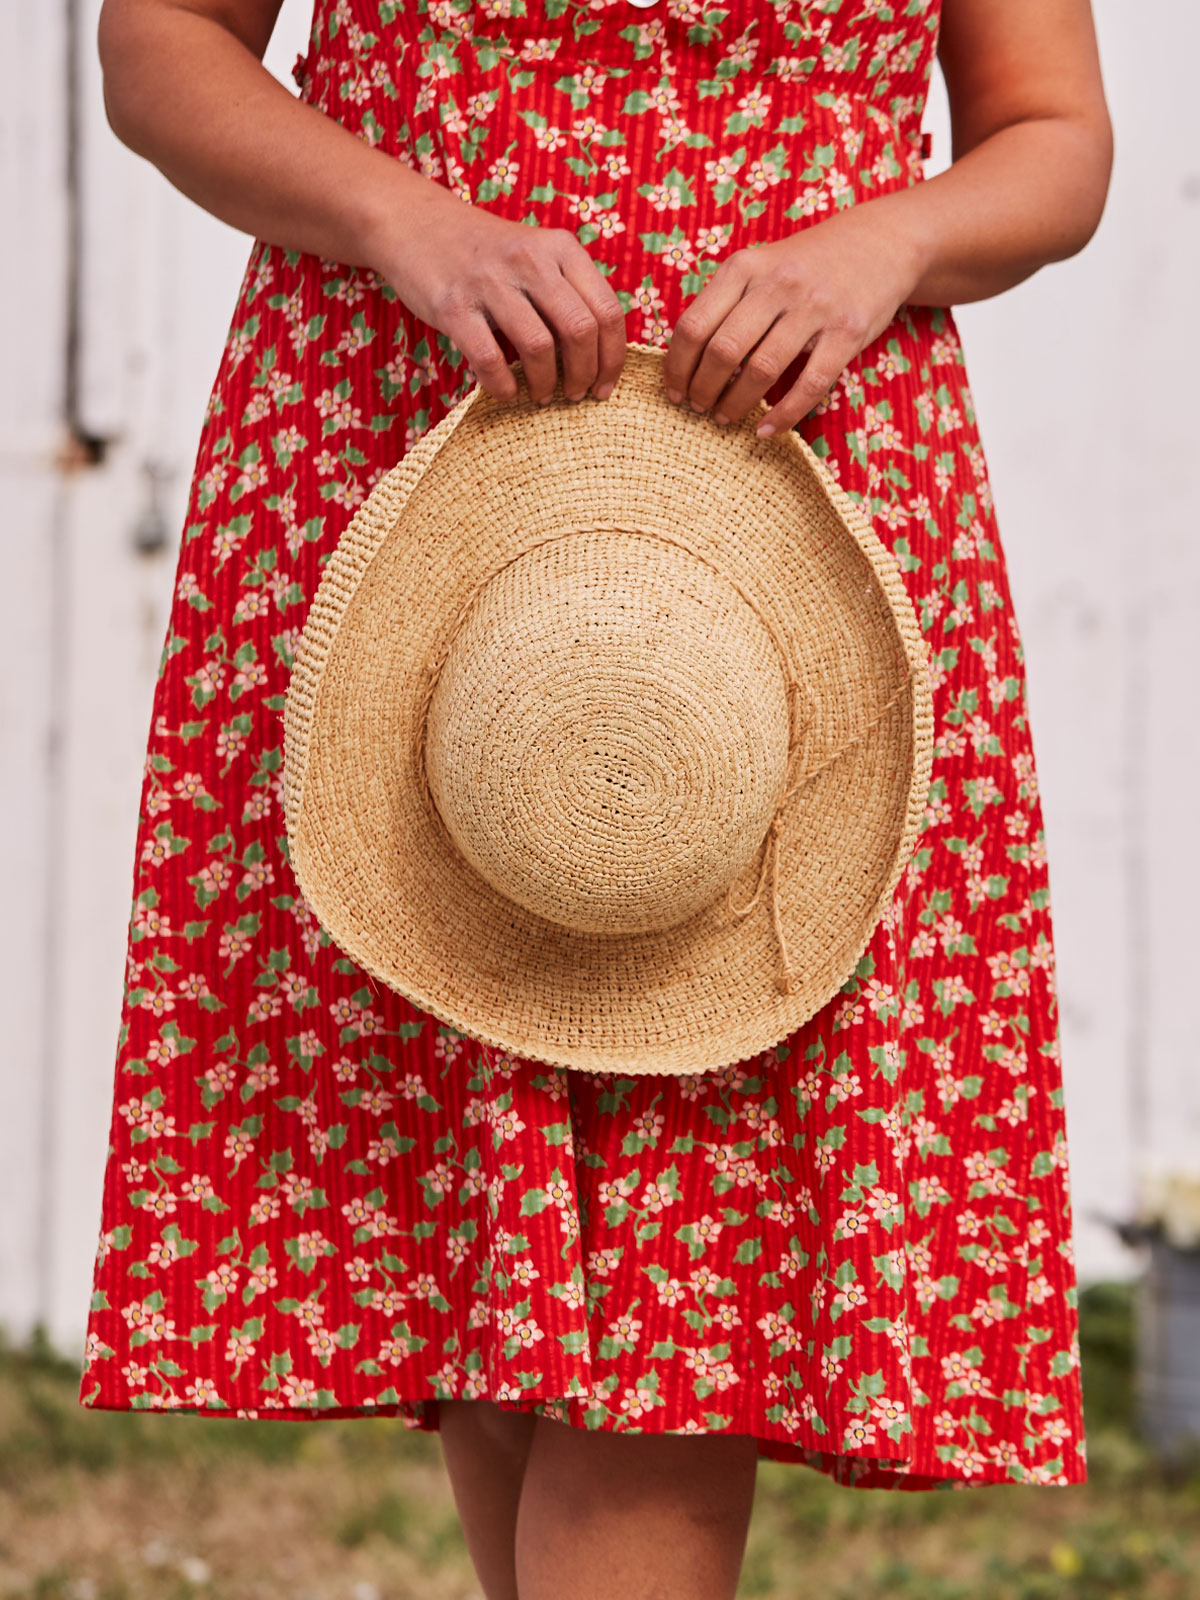 a woman in a red dress holding a hat